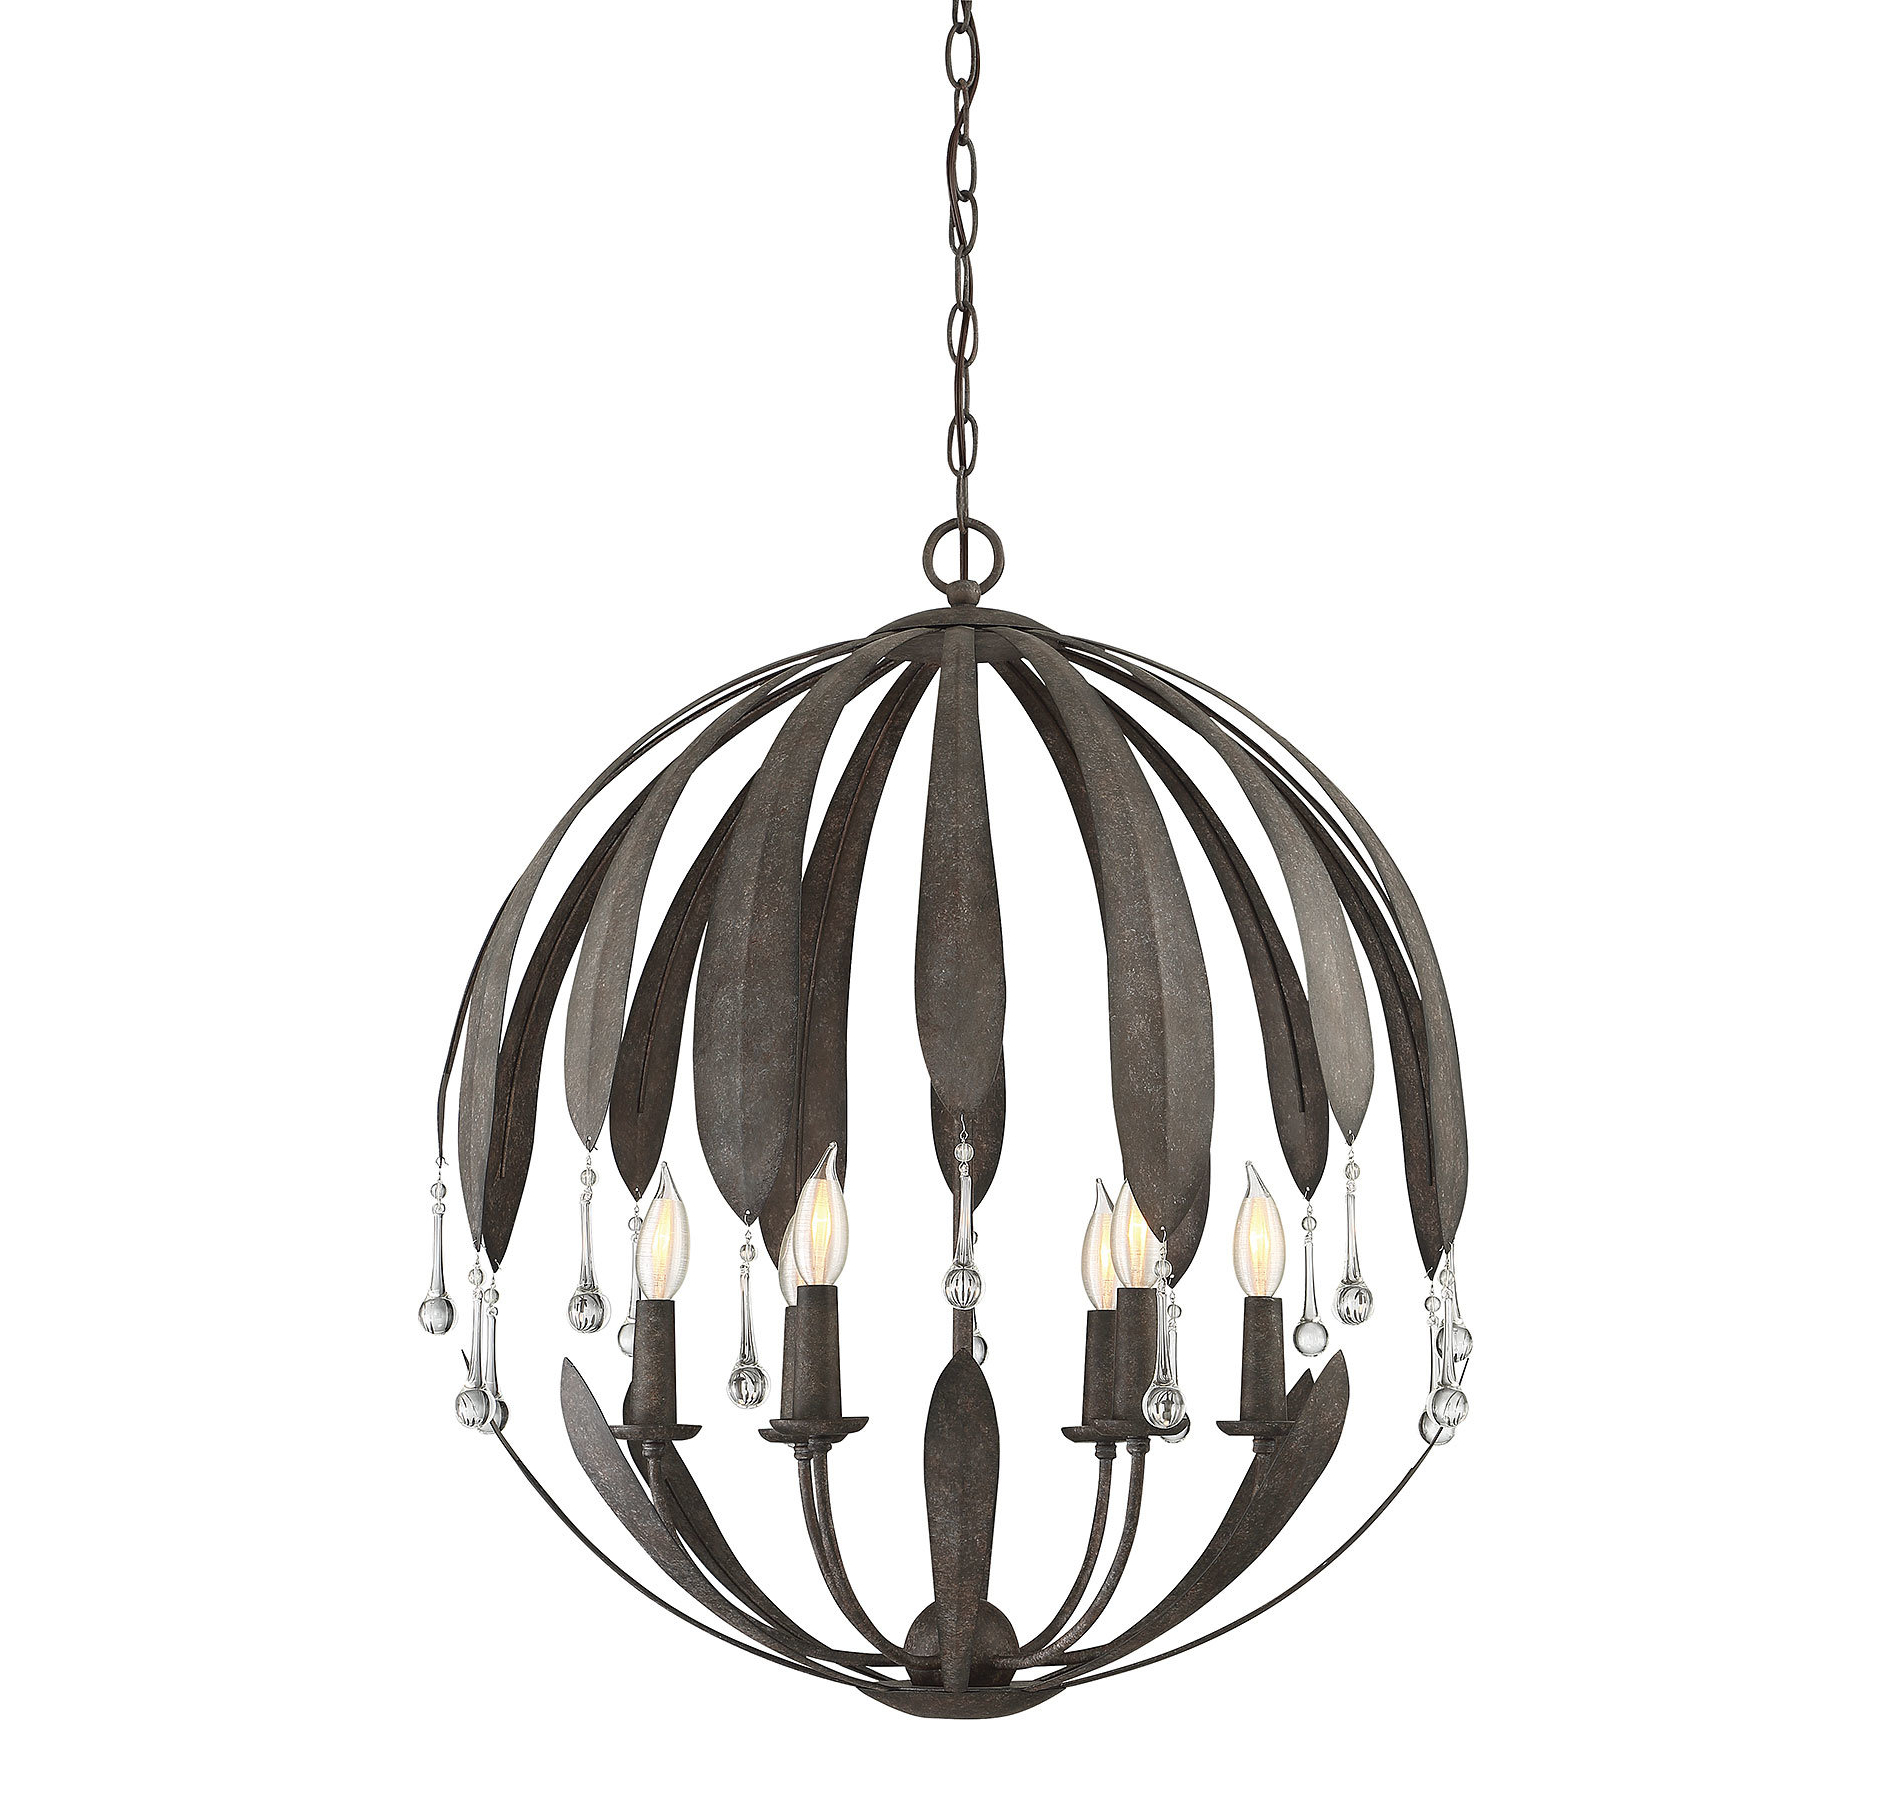 2020 Wyant 6 Light Chandelier Intended For Morganti 4 Light Chandeliers (Gallery 17 of 20)